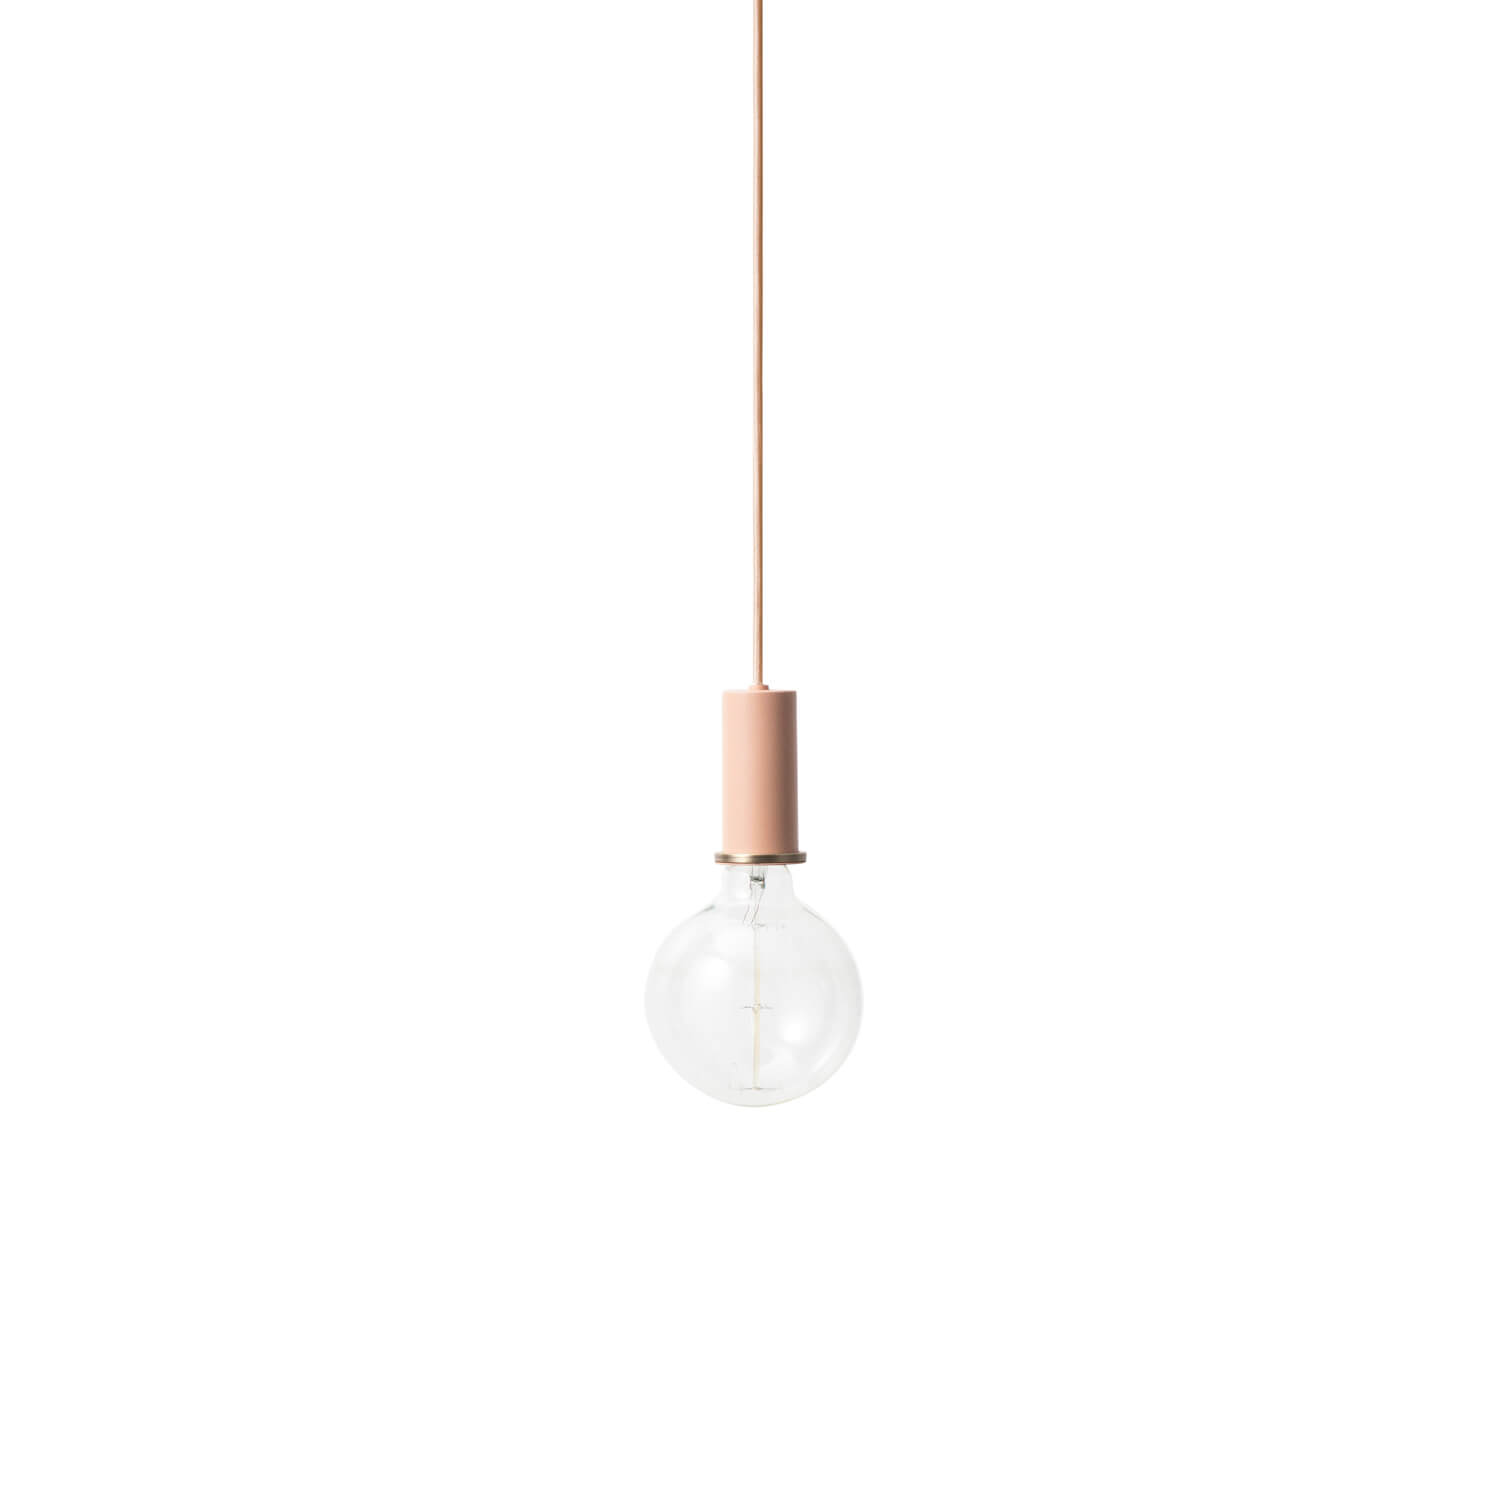 Ferm LIVING – COLLECT Lighting – Pendelleuchte Kurz – Rose